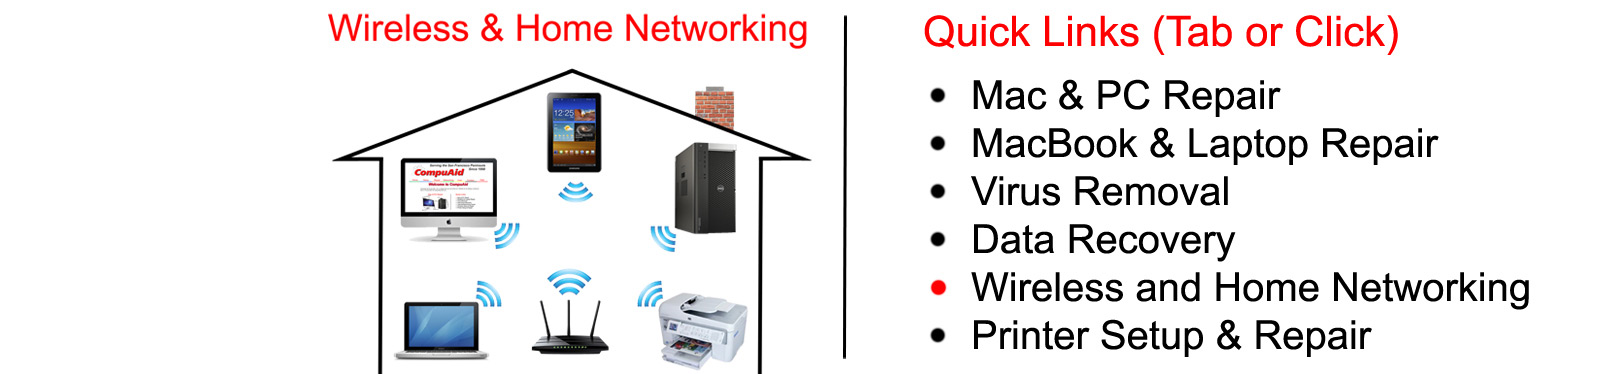 Wireless Networking, Home Networking in San Carlos, CA